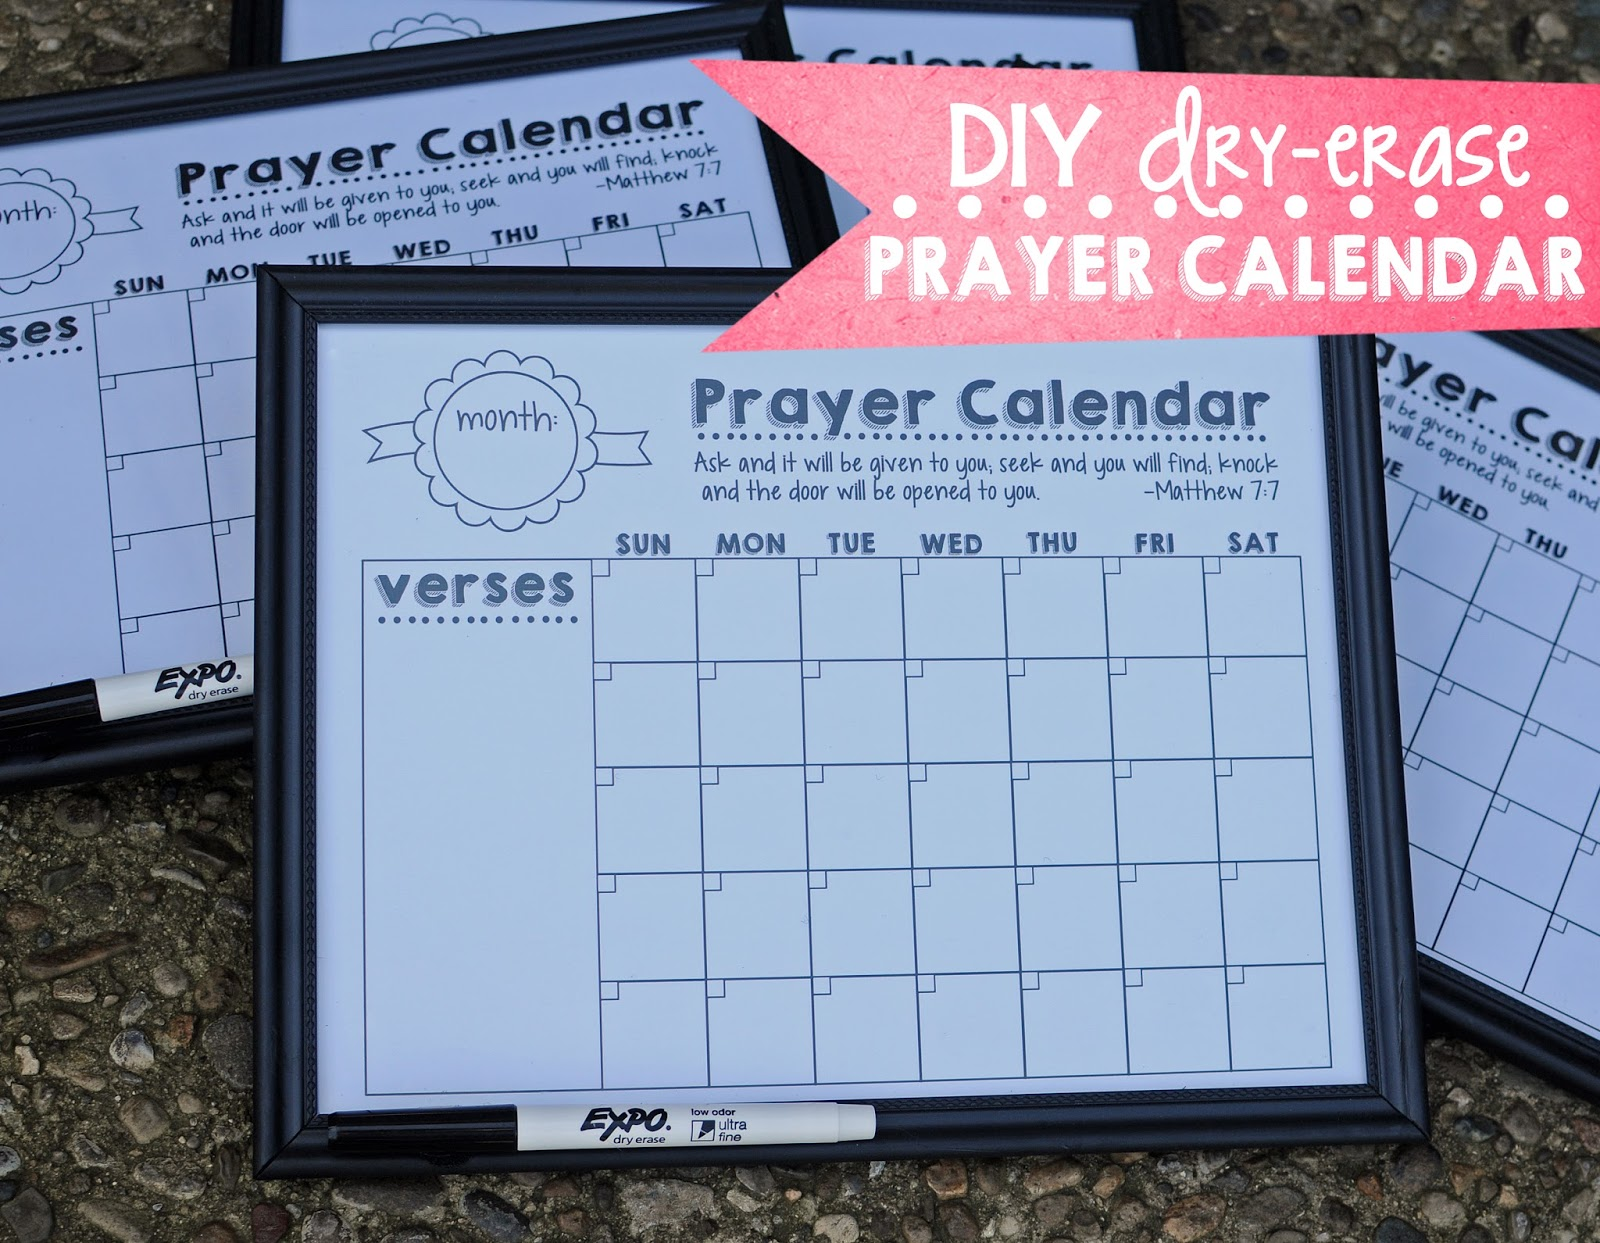 Diy Refrigerator Calendar : M k designs diy dry erase fridge prayer calendar